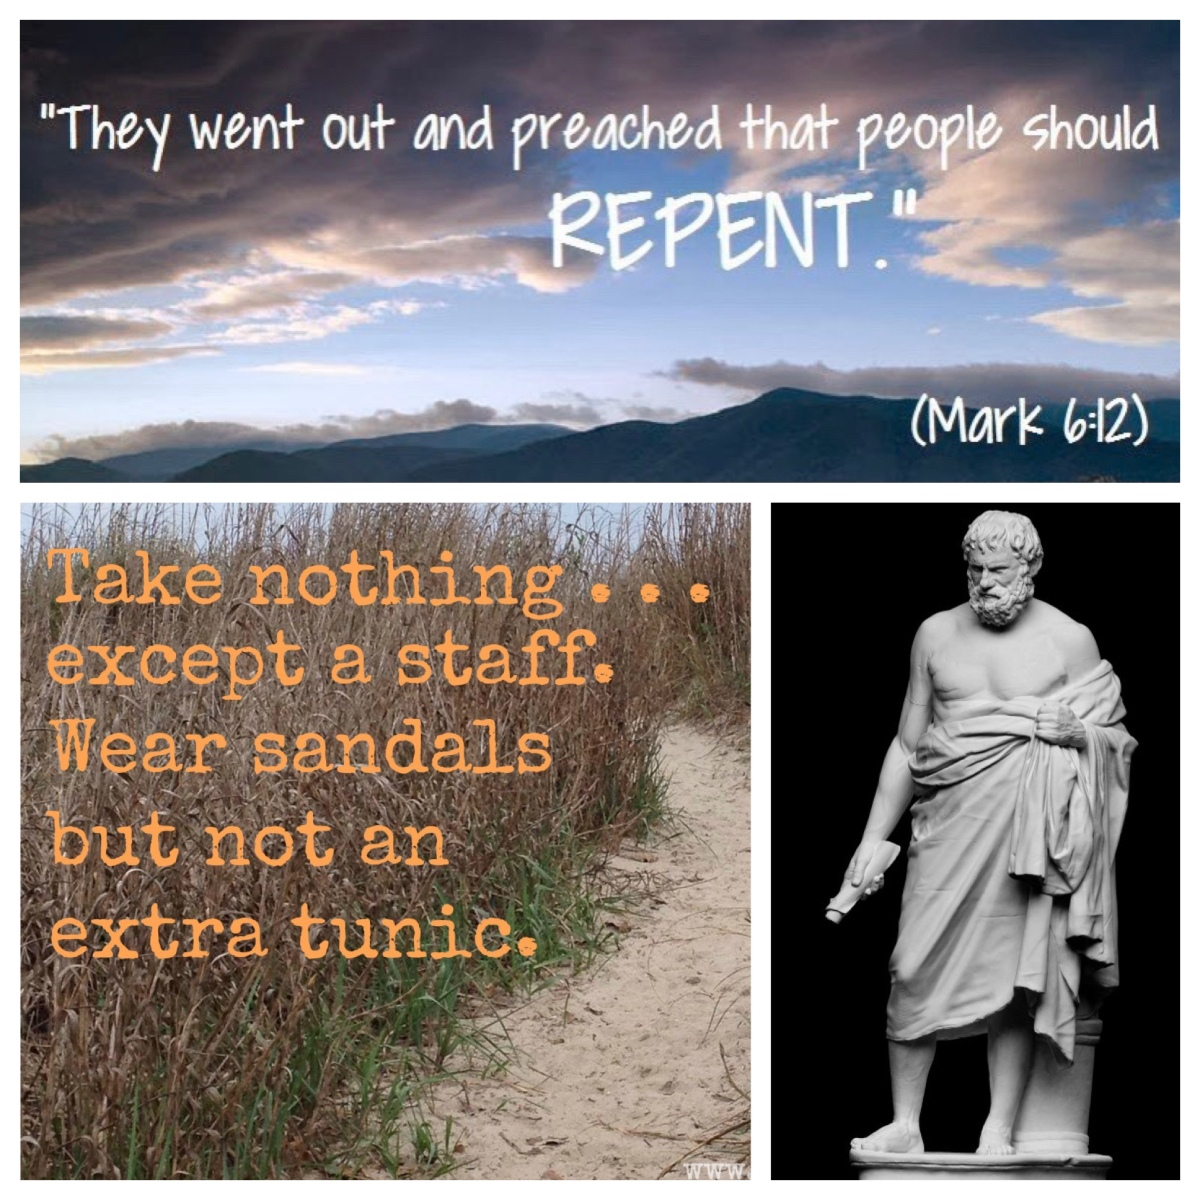 Just sandals and a staff—and only one tunic (Mark 6; Pentecost6B)